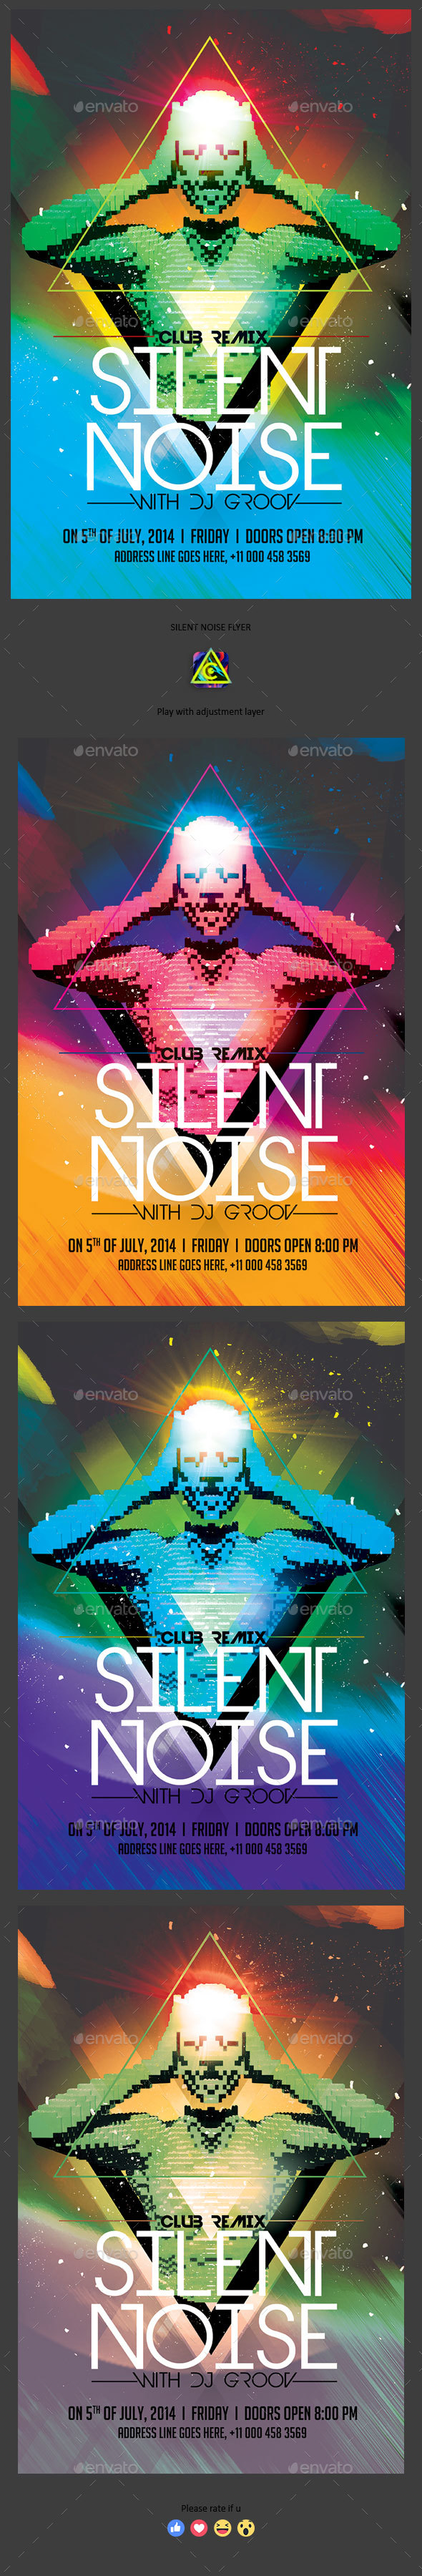 Silent Noise Flyer - Clubs & Parties Events